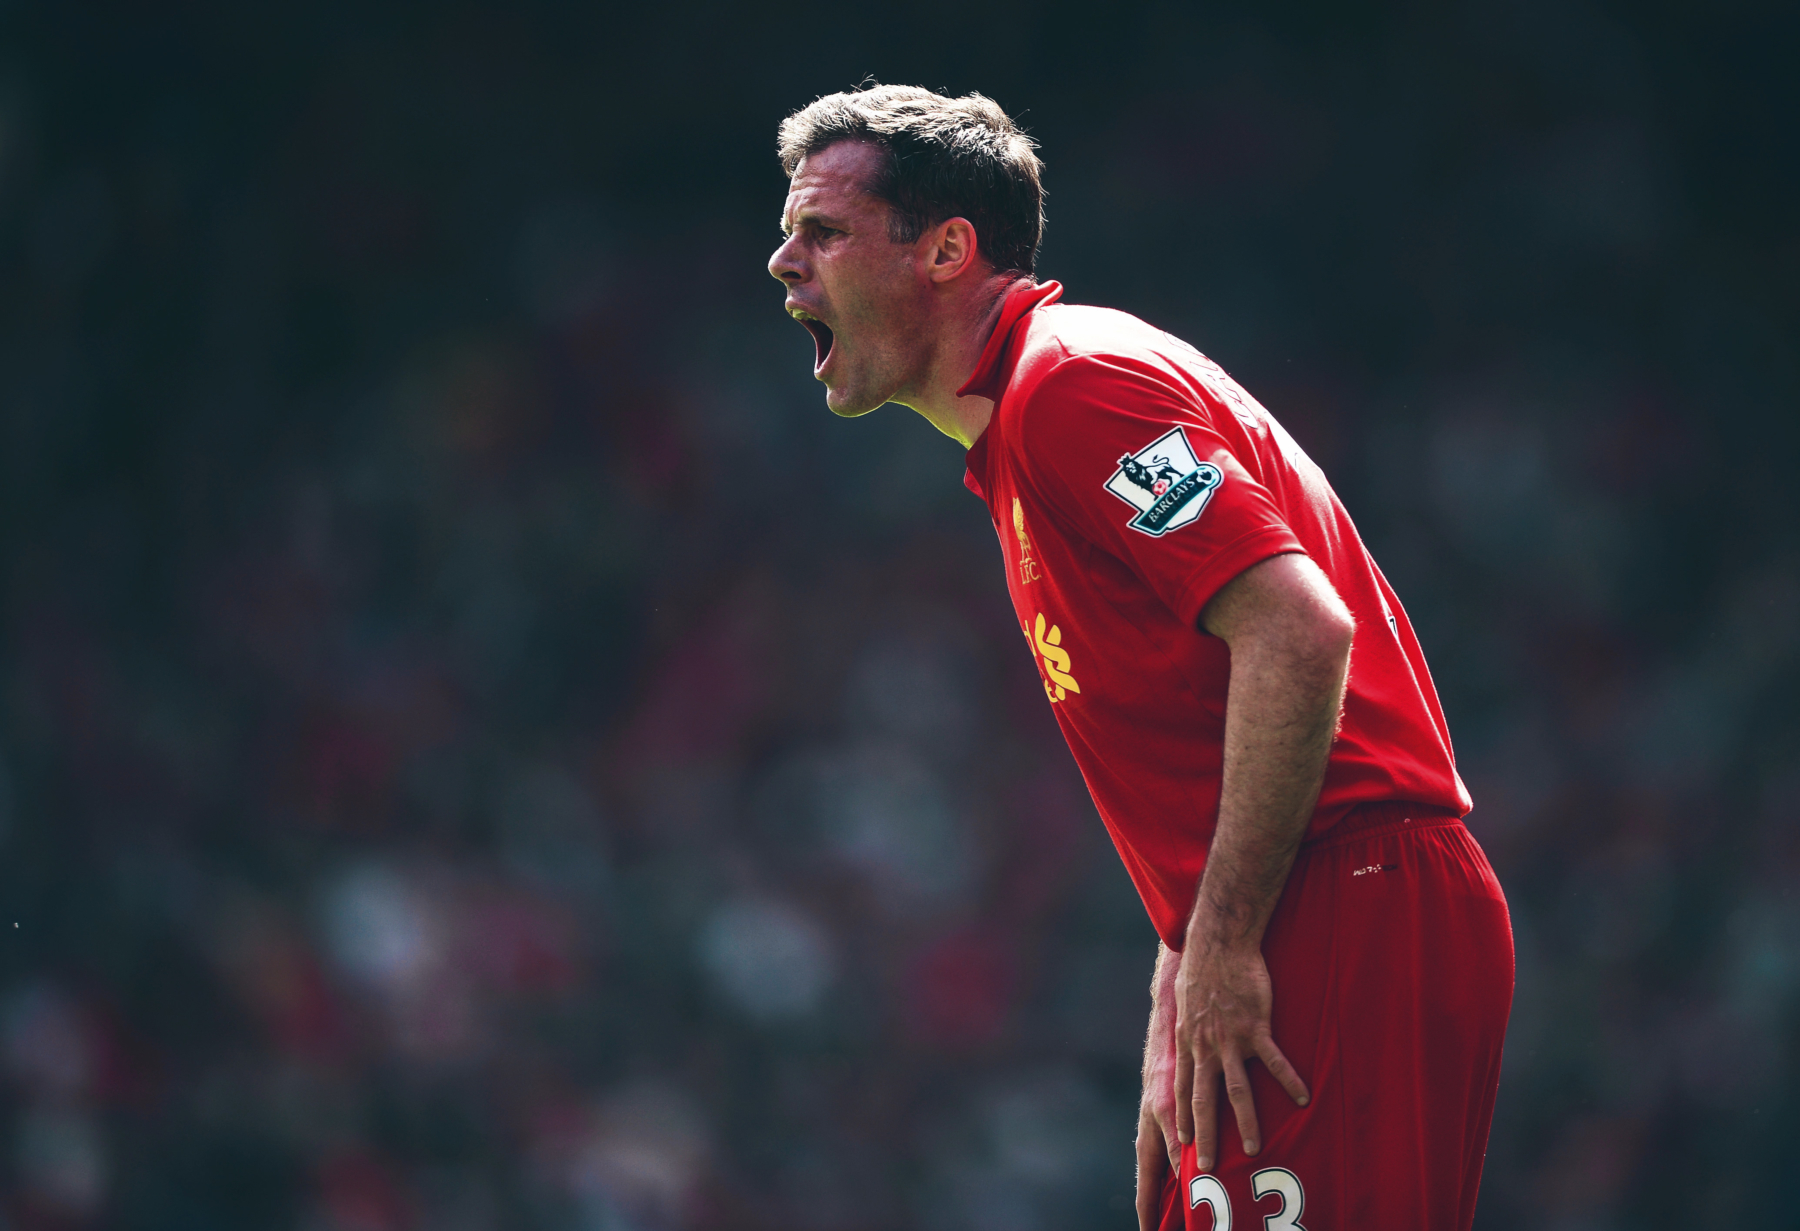 Jamie Carragher: the perfect form of a true football fanatic